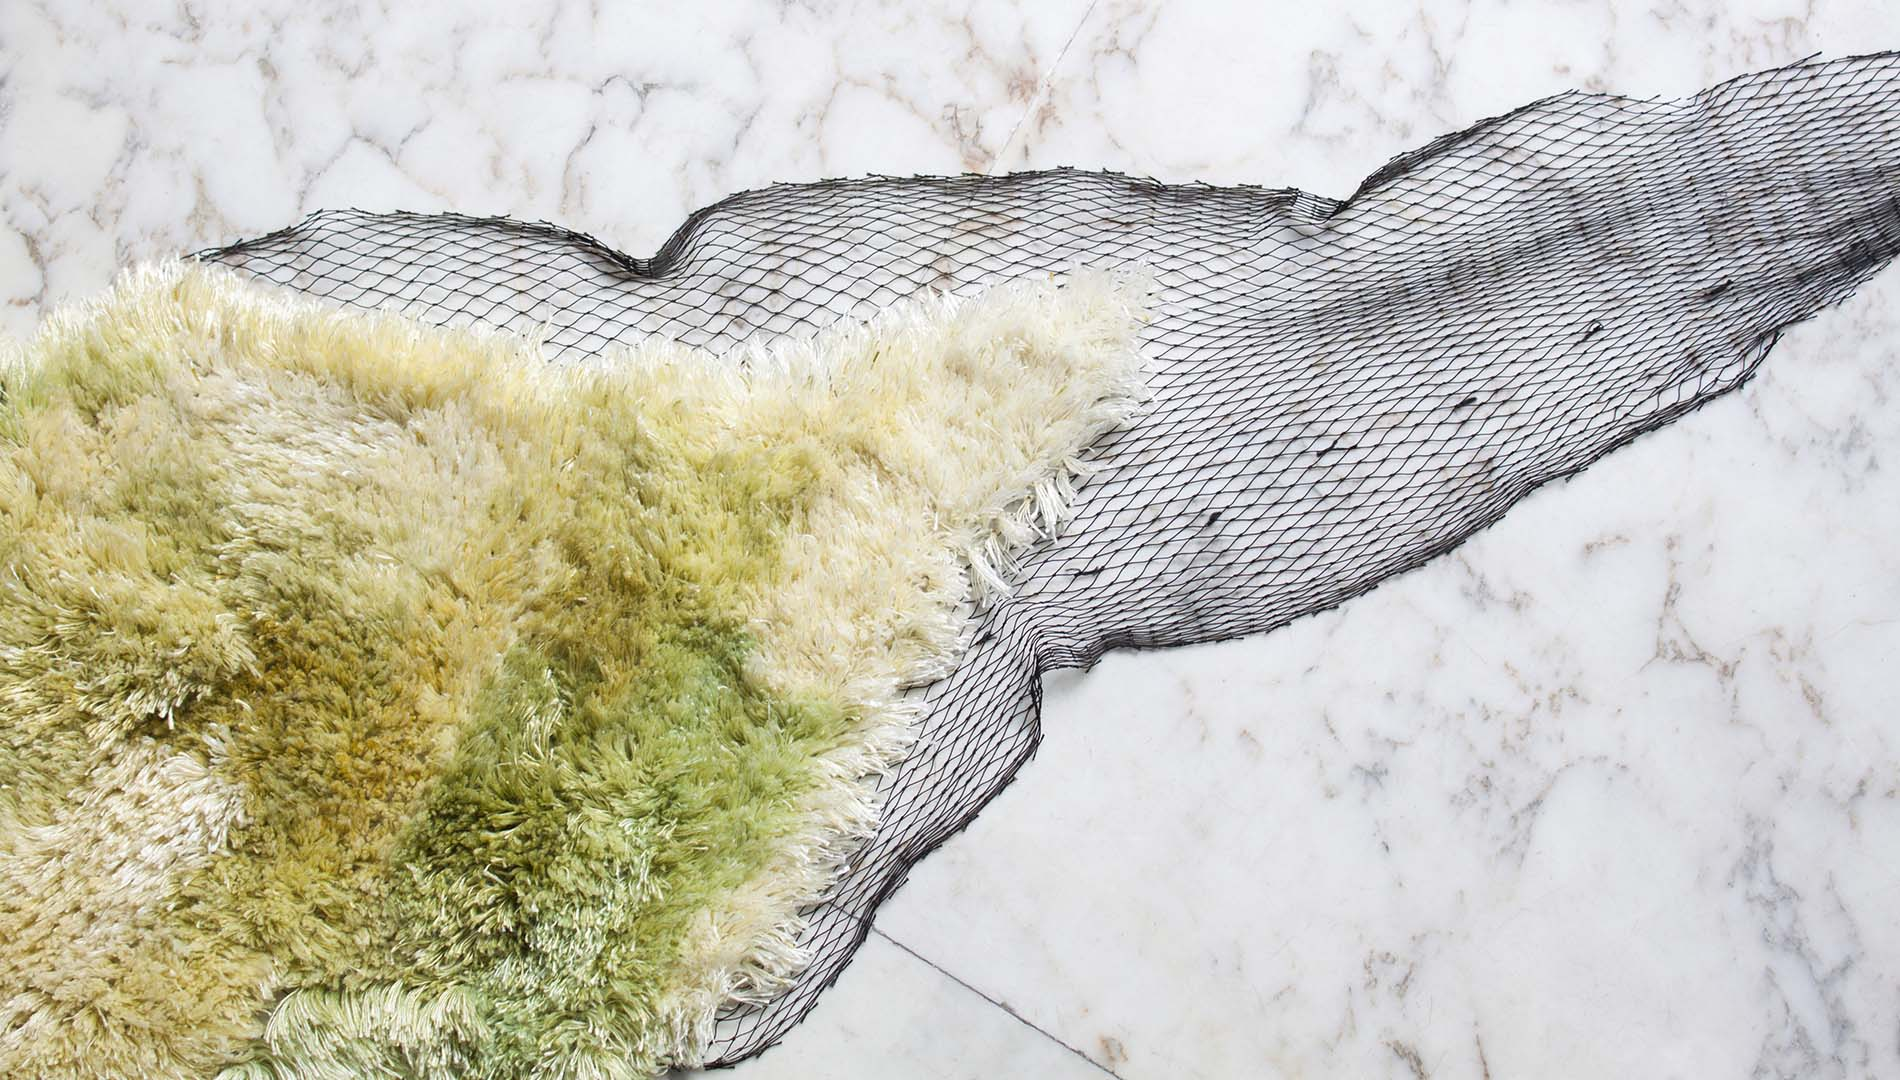 Seaweed yarn can be a sustainable replacement for plastic fabric and an alternative to avoid plastic pollution.